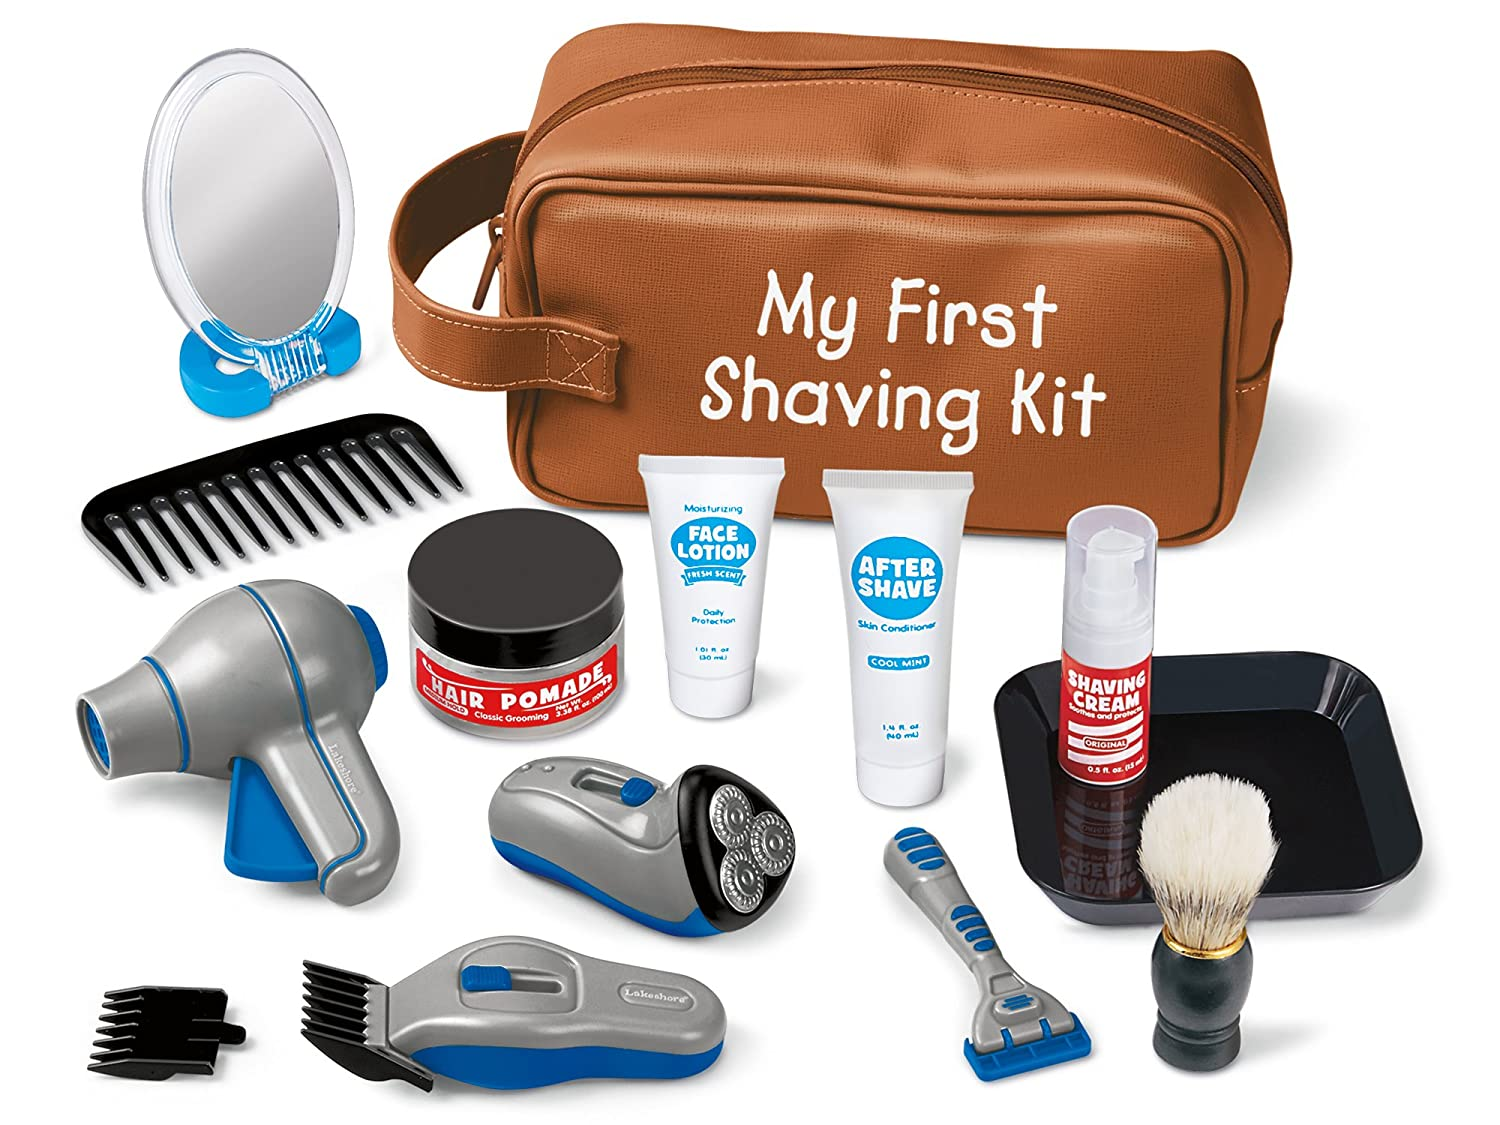 Lakeshore My First Shaving Kit